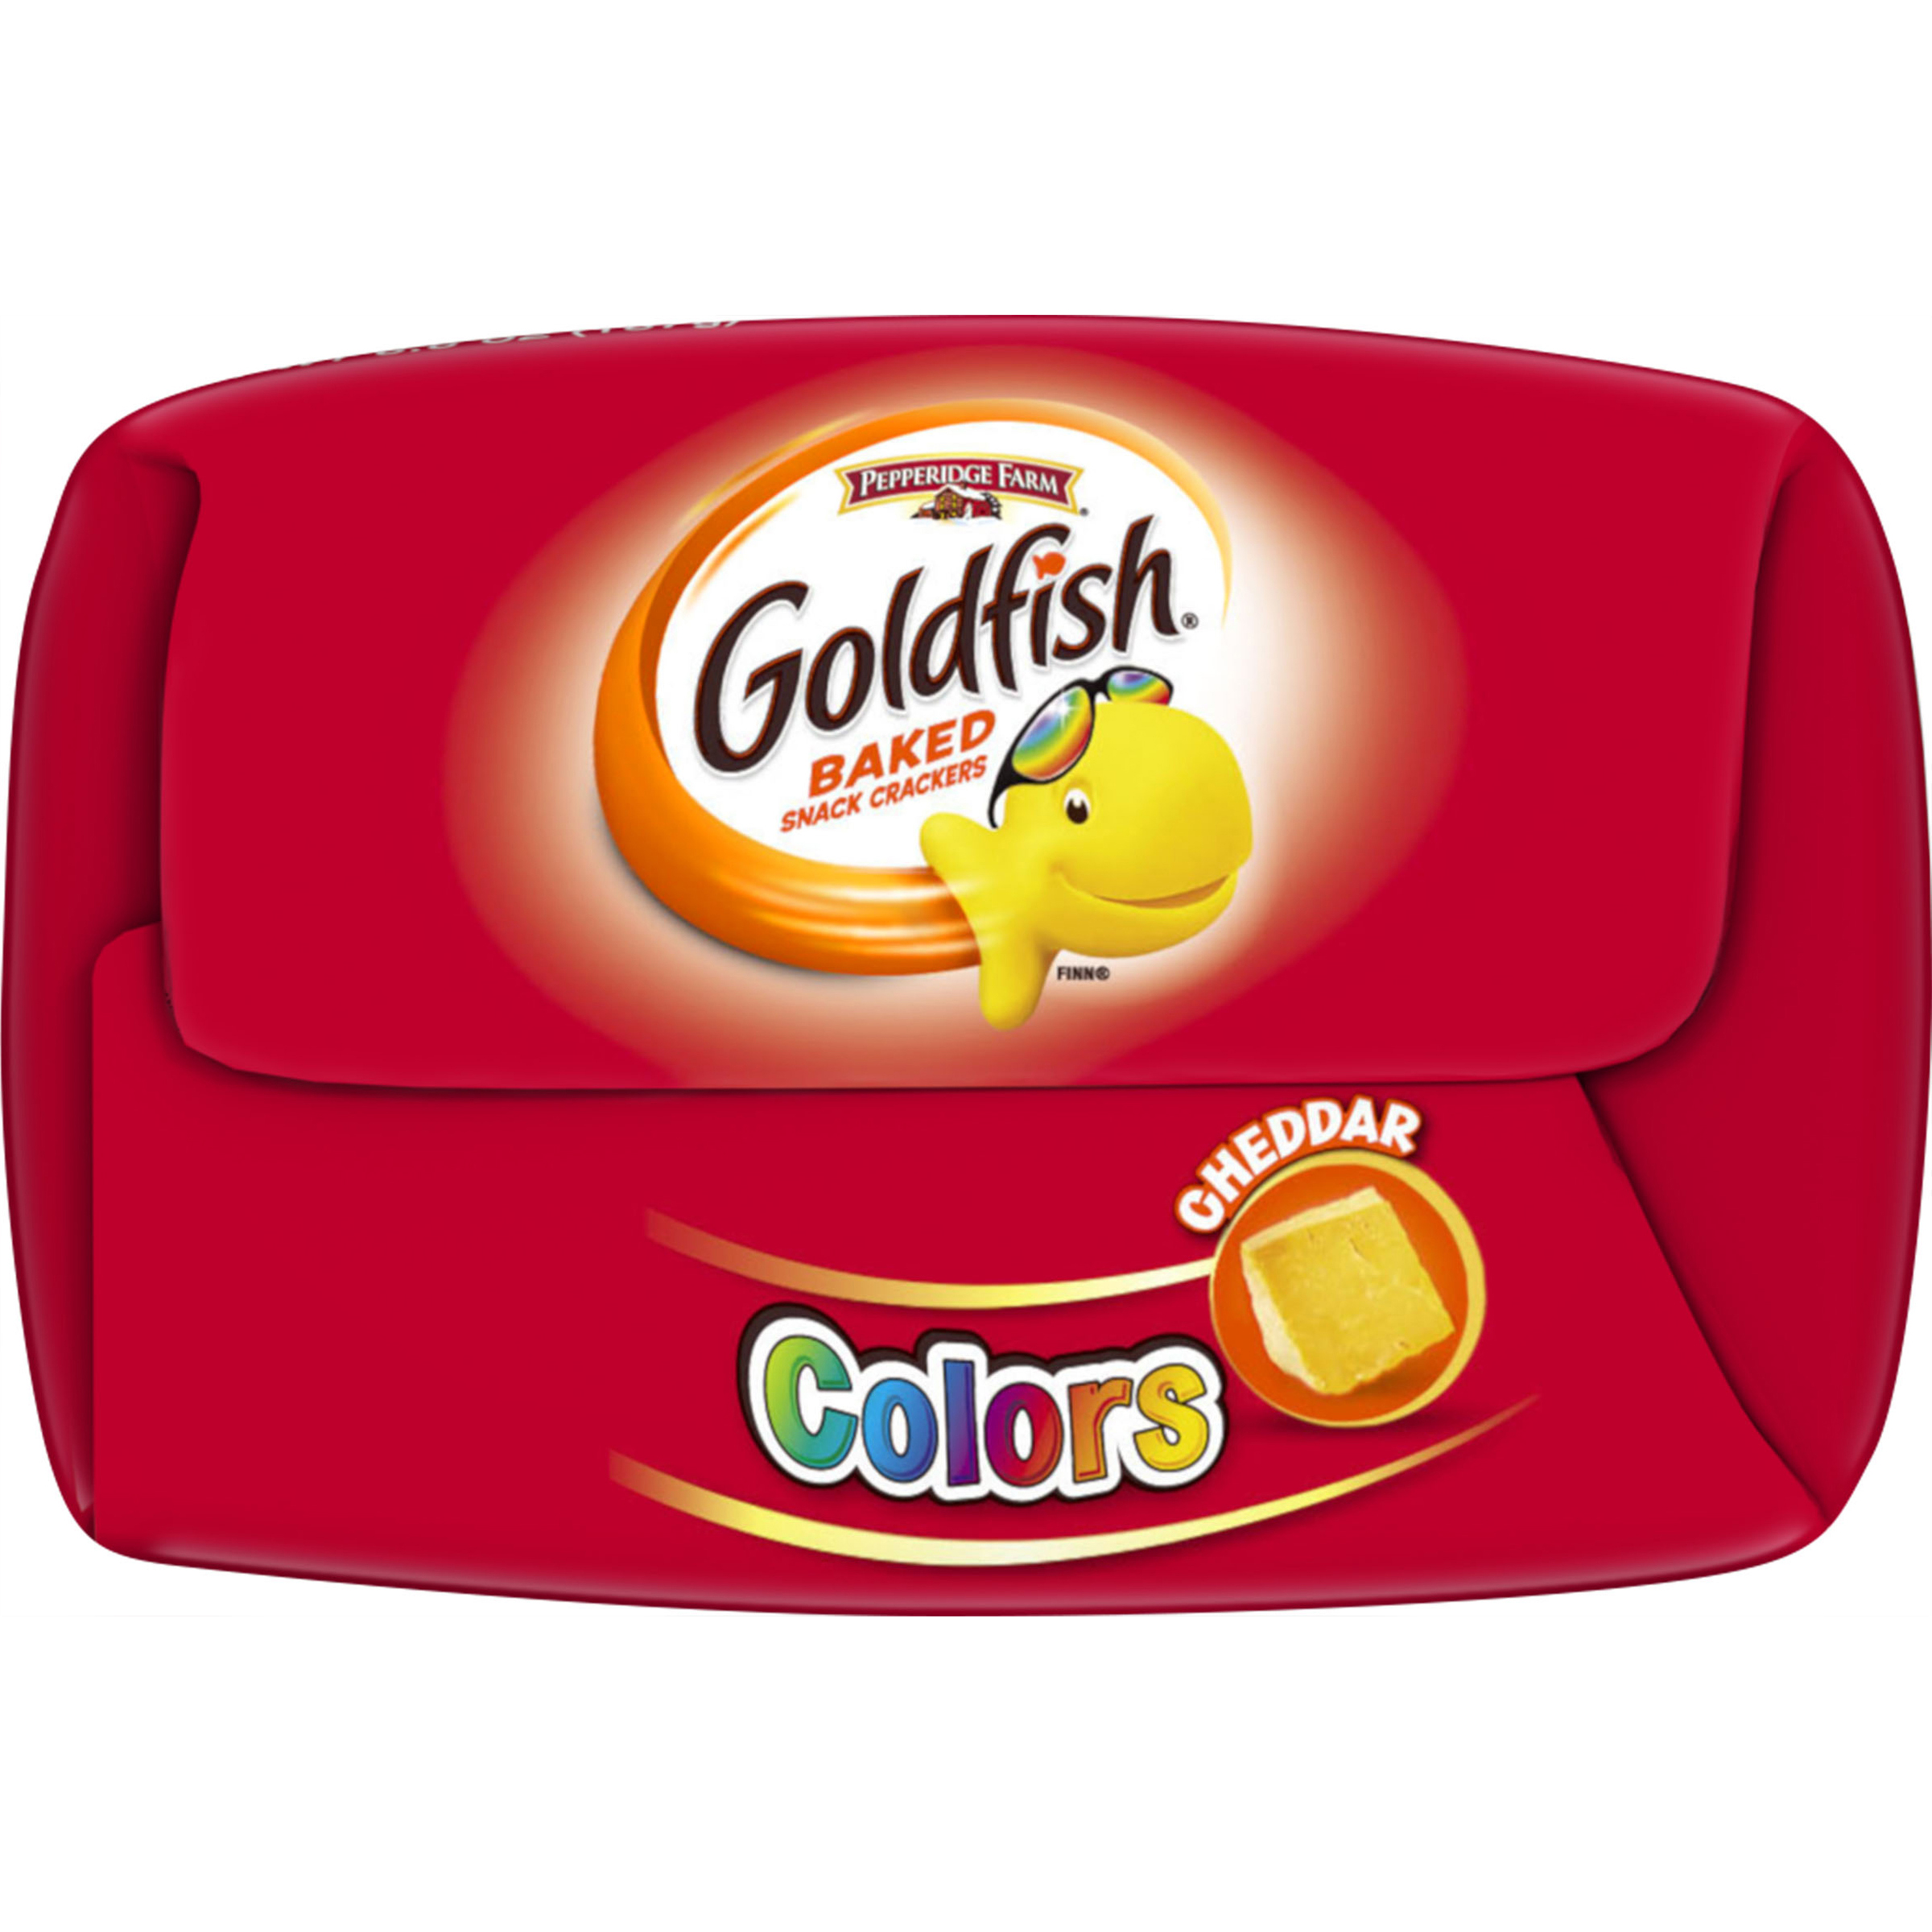 Pepperidge Farm Goldfish Colors Cheddar Crackers, 6.6 oz. Bag ...